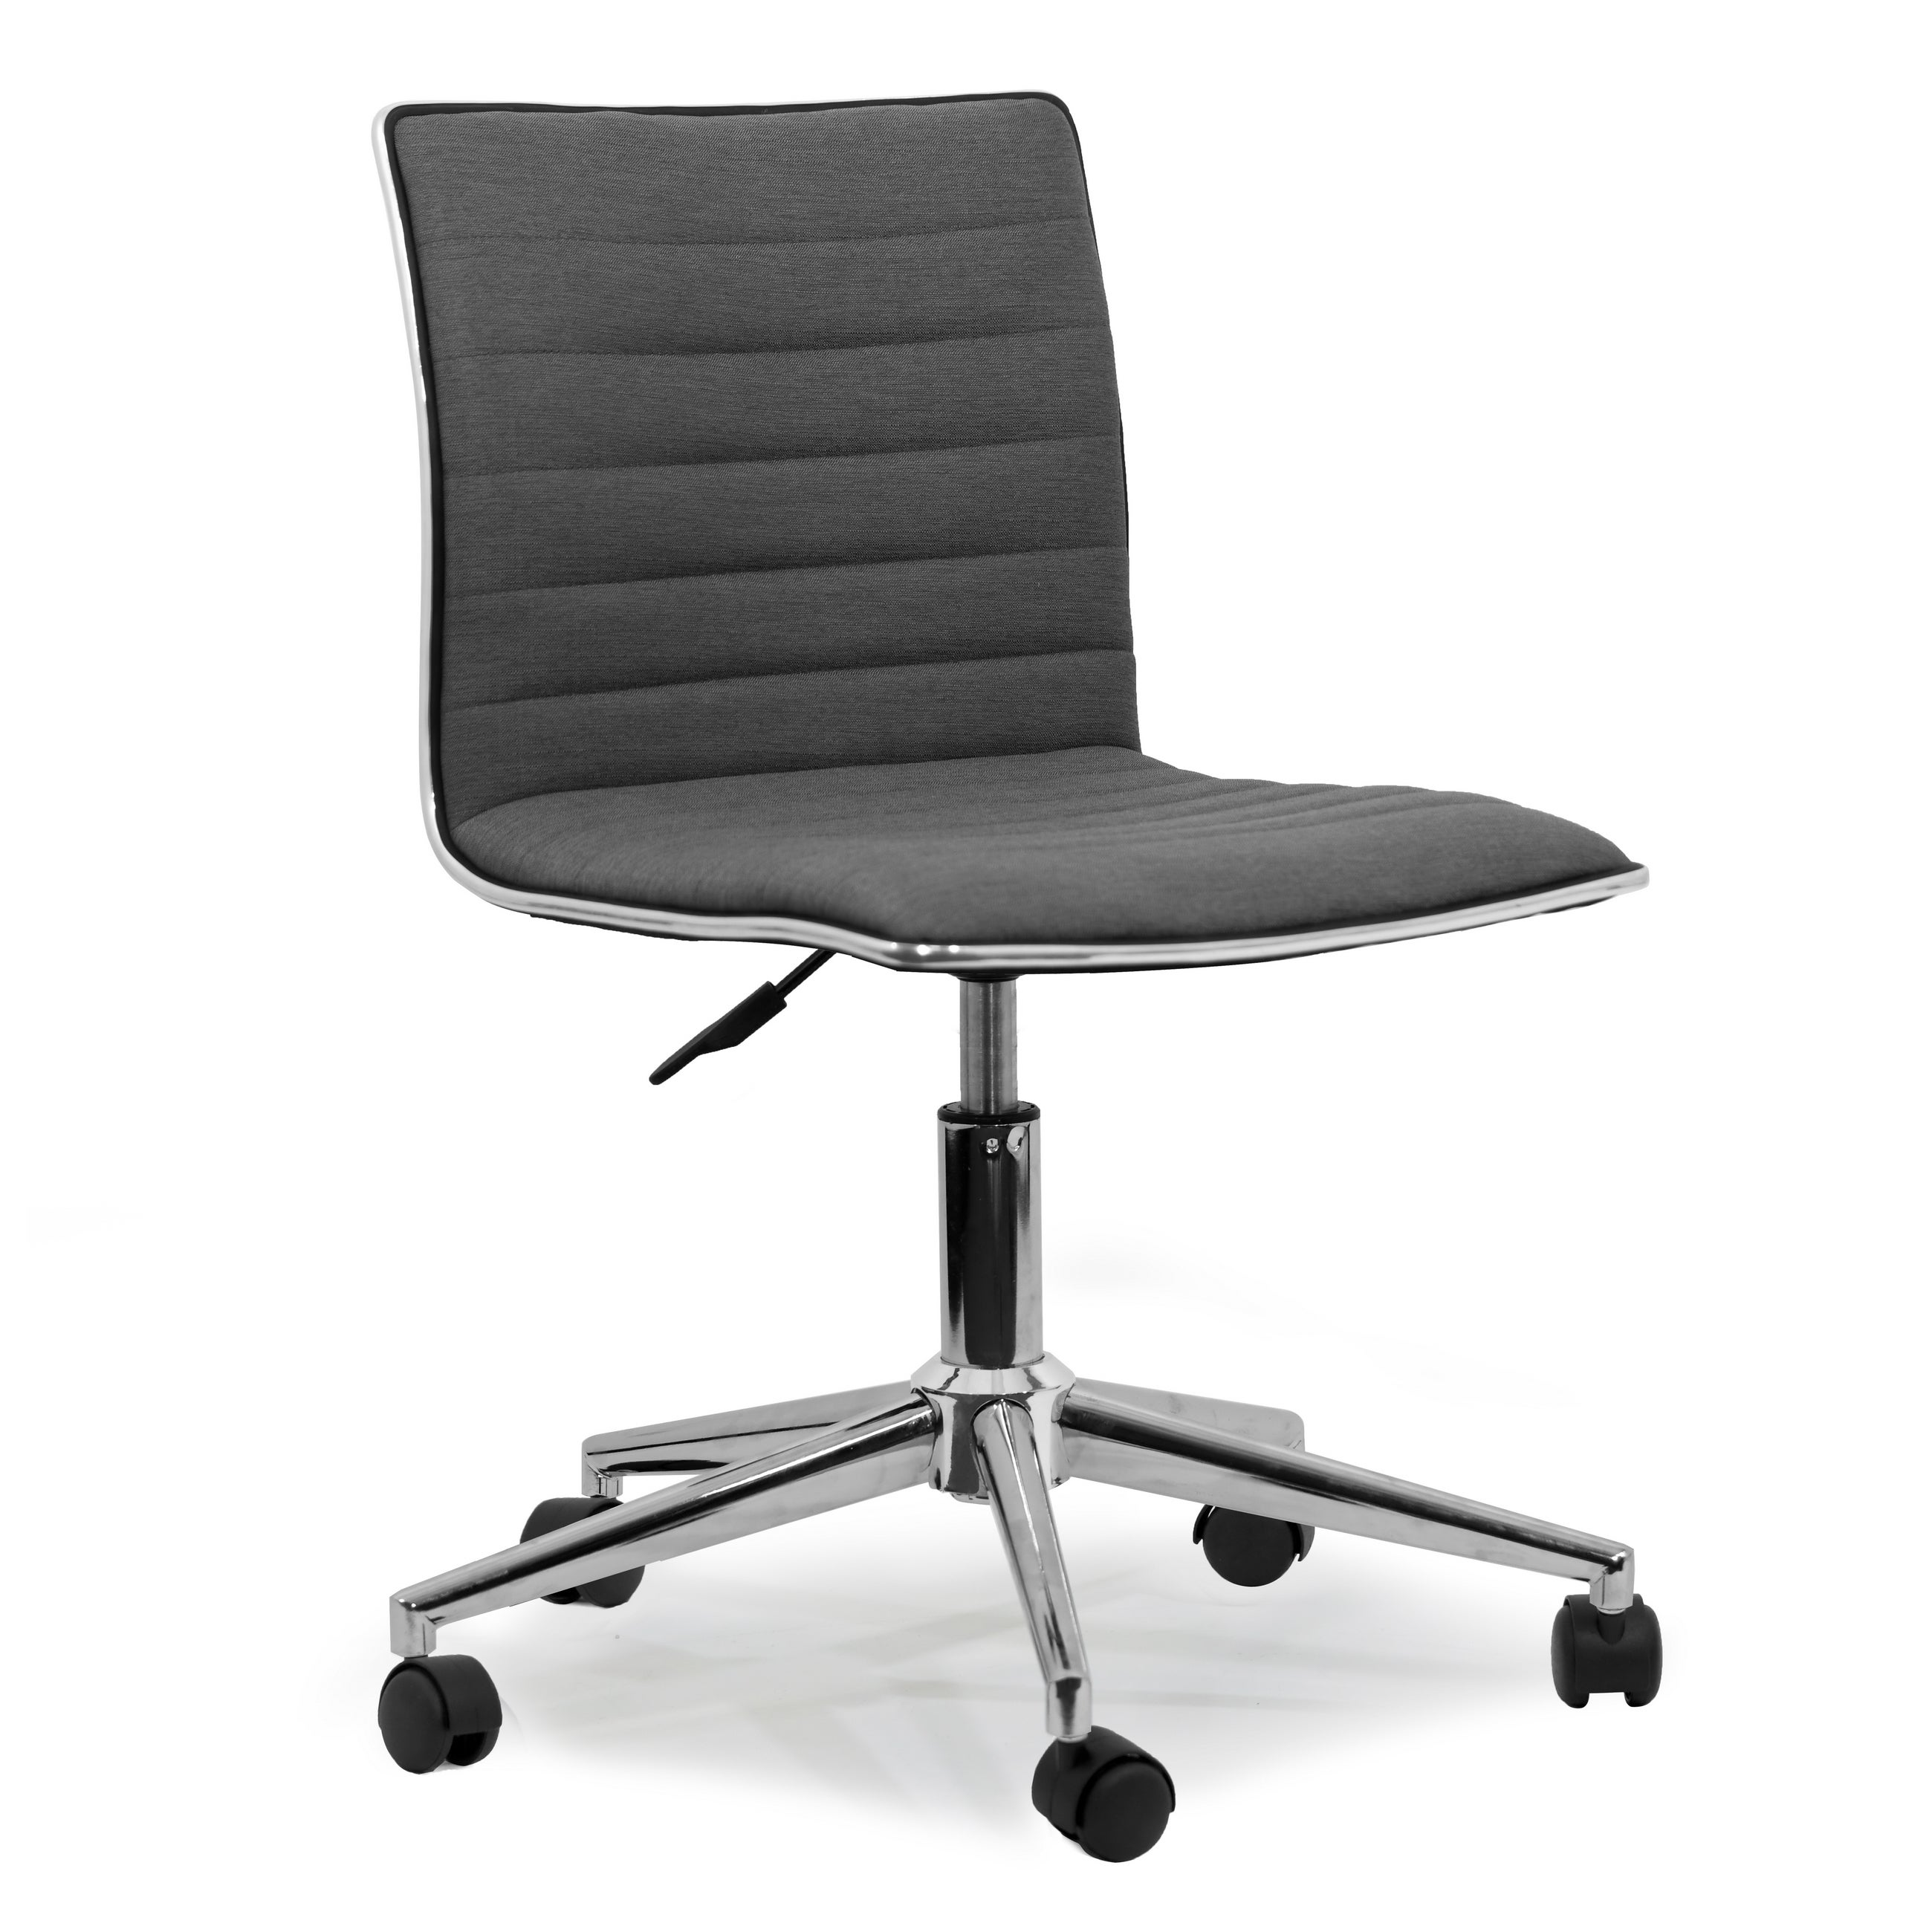 Chair With Wheels >> Aiko Grey Fabric Chrome Metal Swivel Office Chair With Wheels